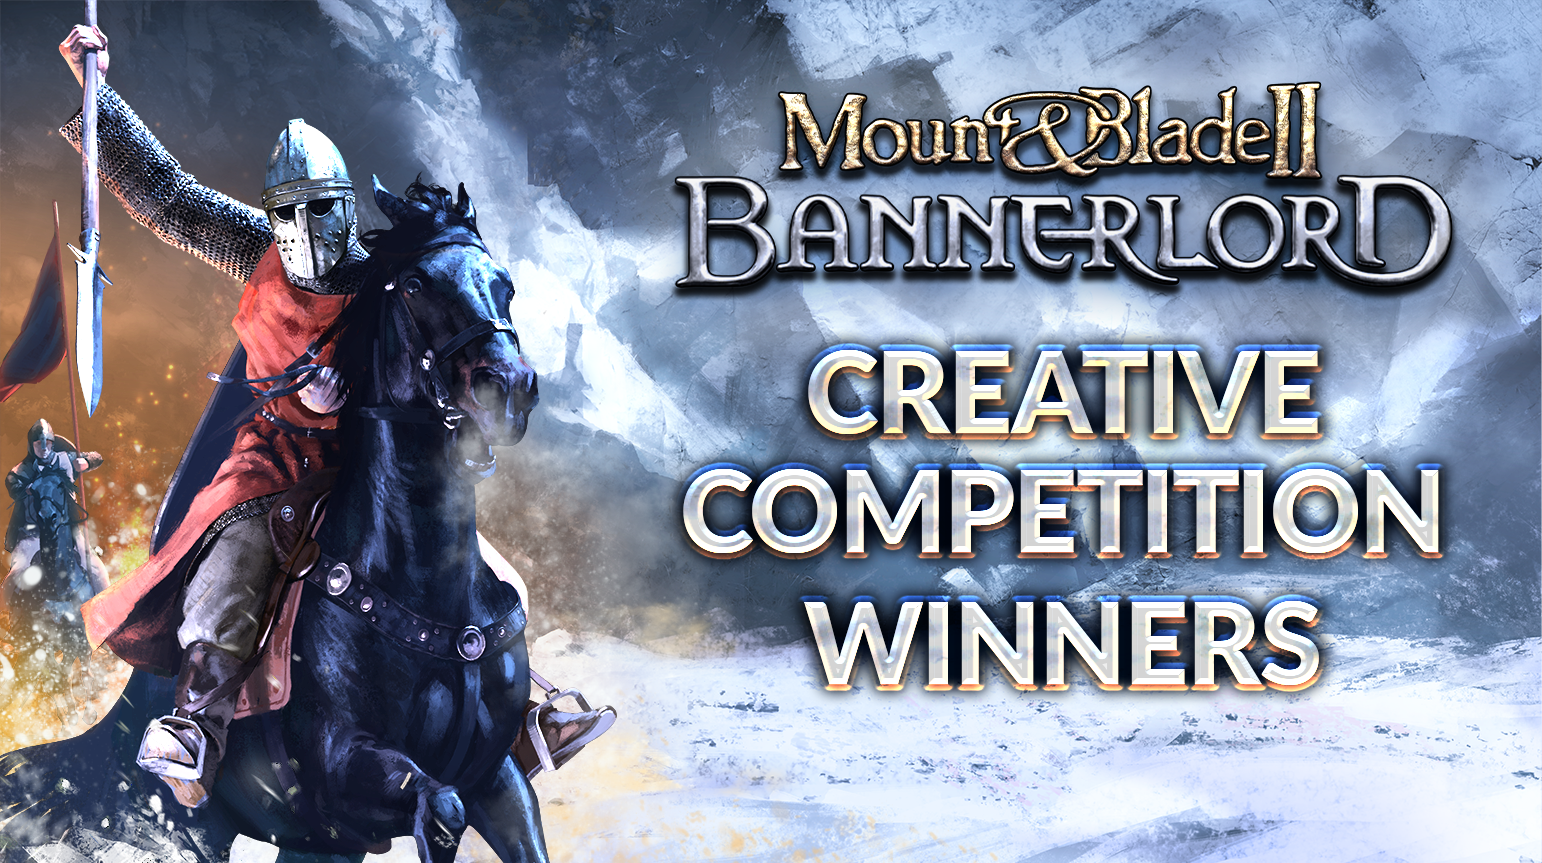 creativecompetitionwinners20.png